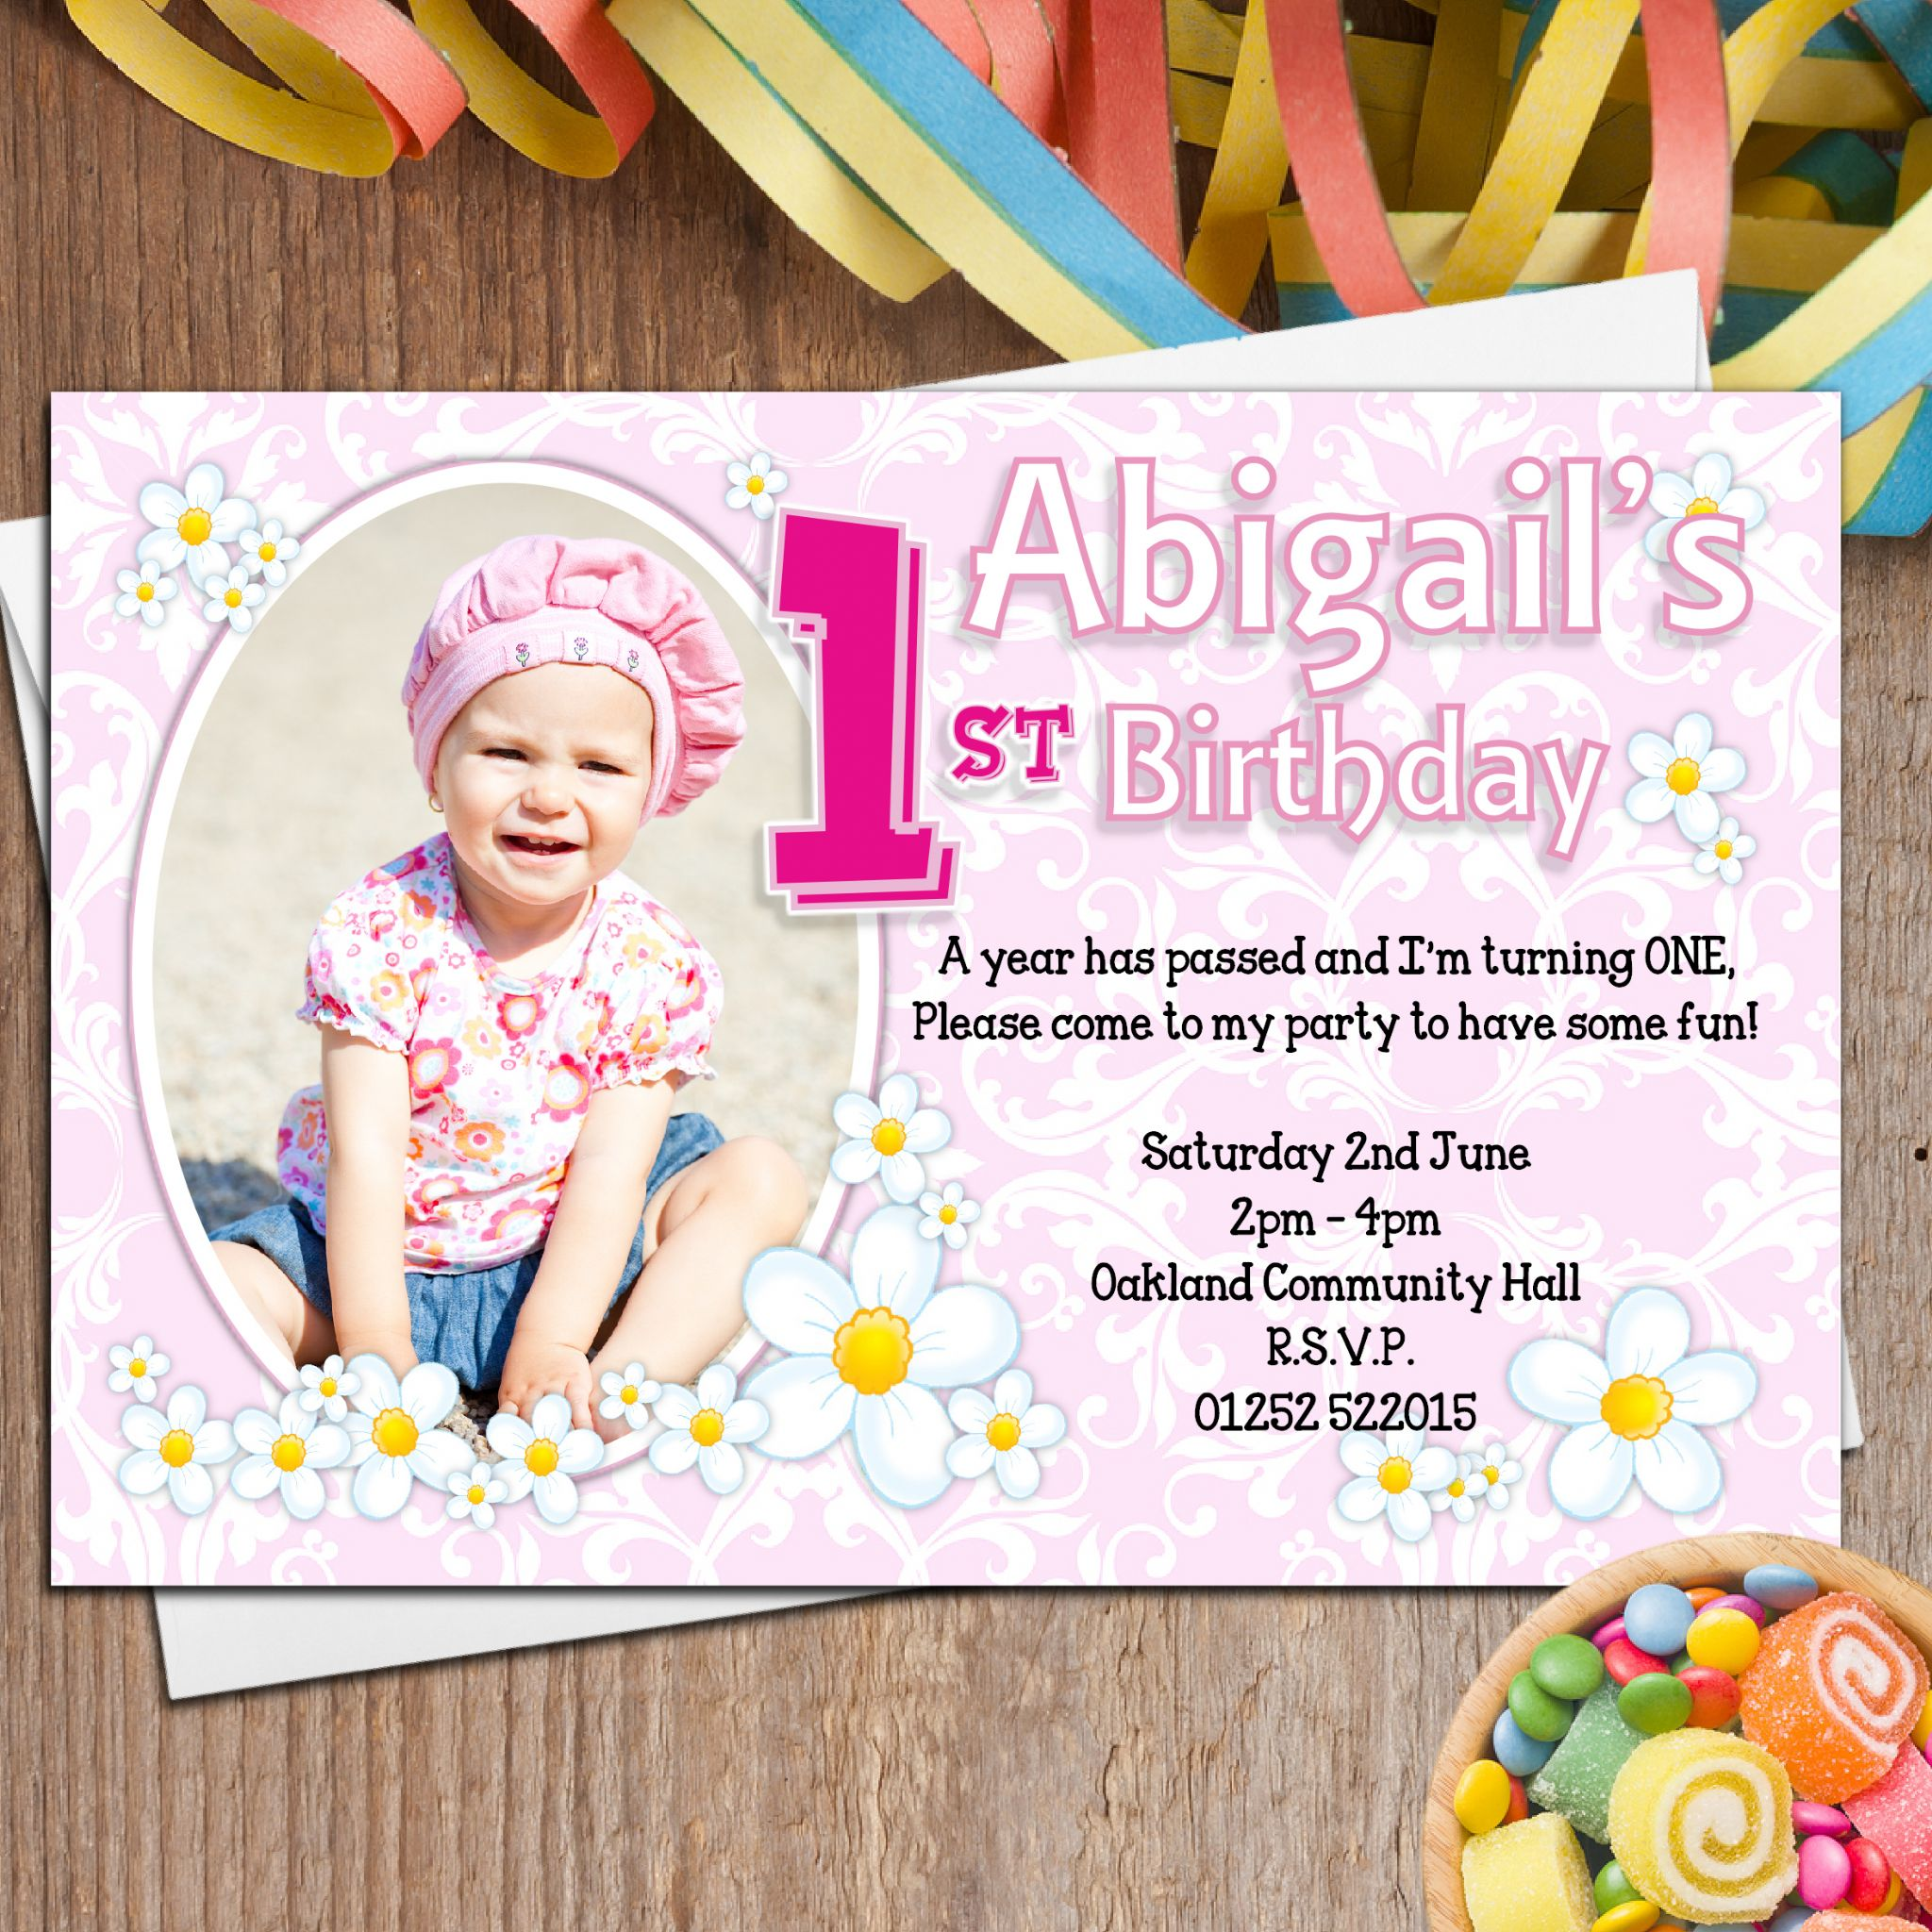 personalized photo first birthday invitations ; birthday-personalized-first-1st-damask-birthday-party-invitation-with-photo-frame